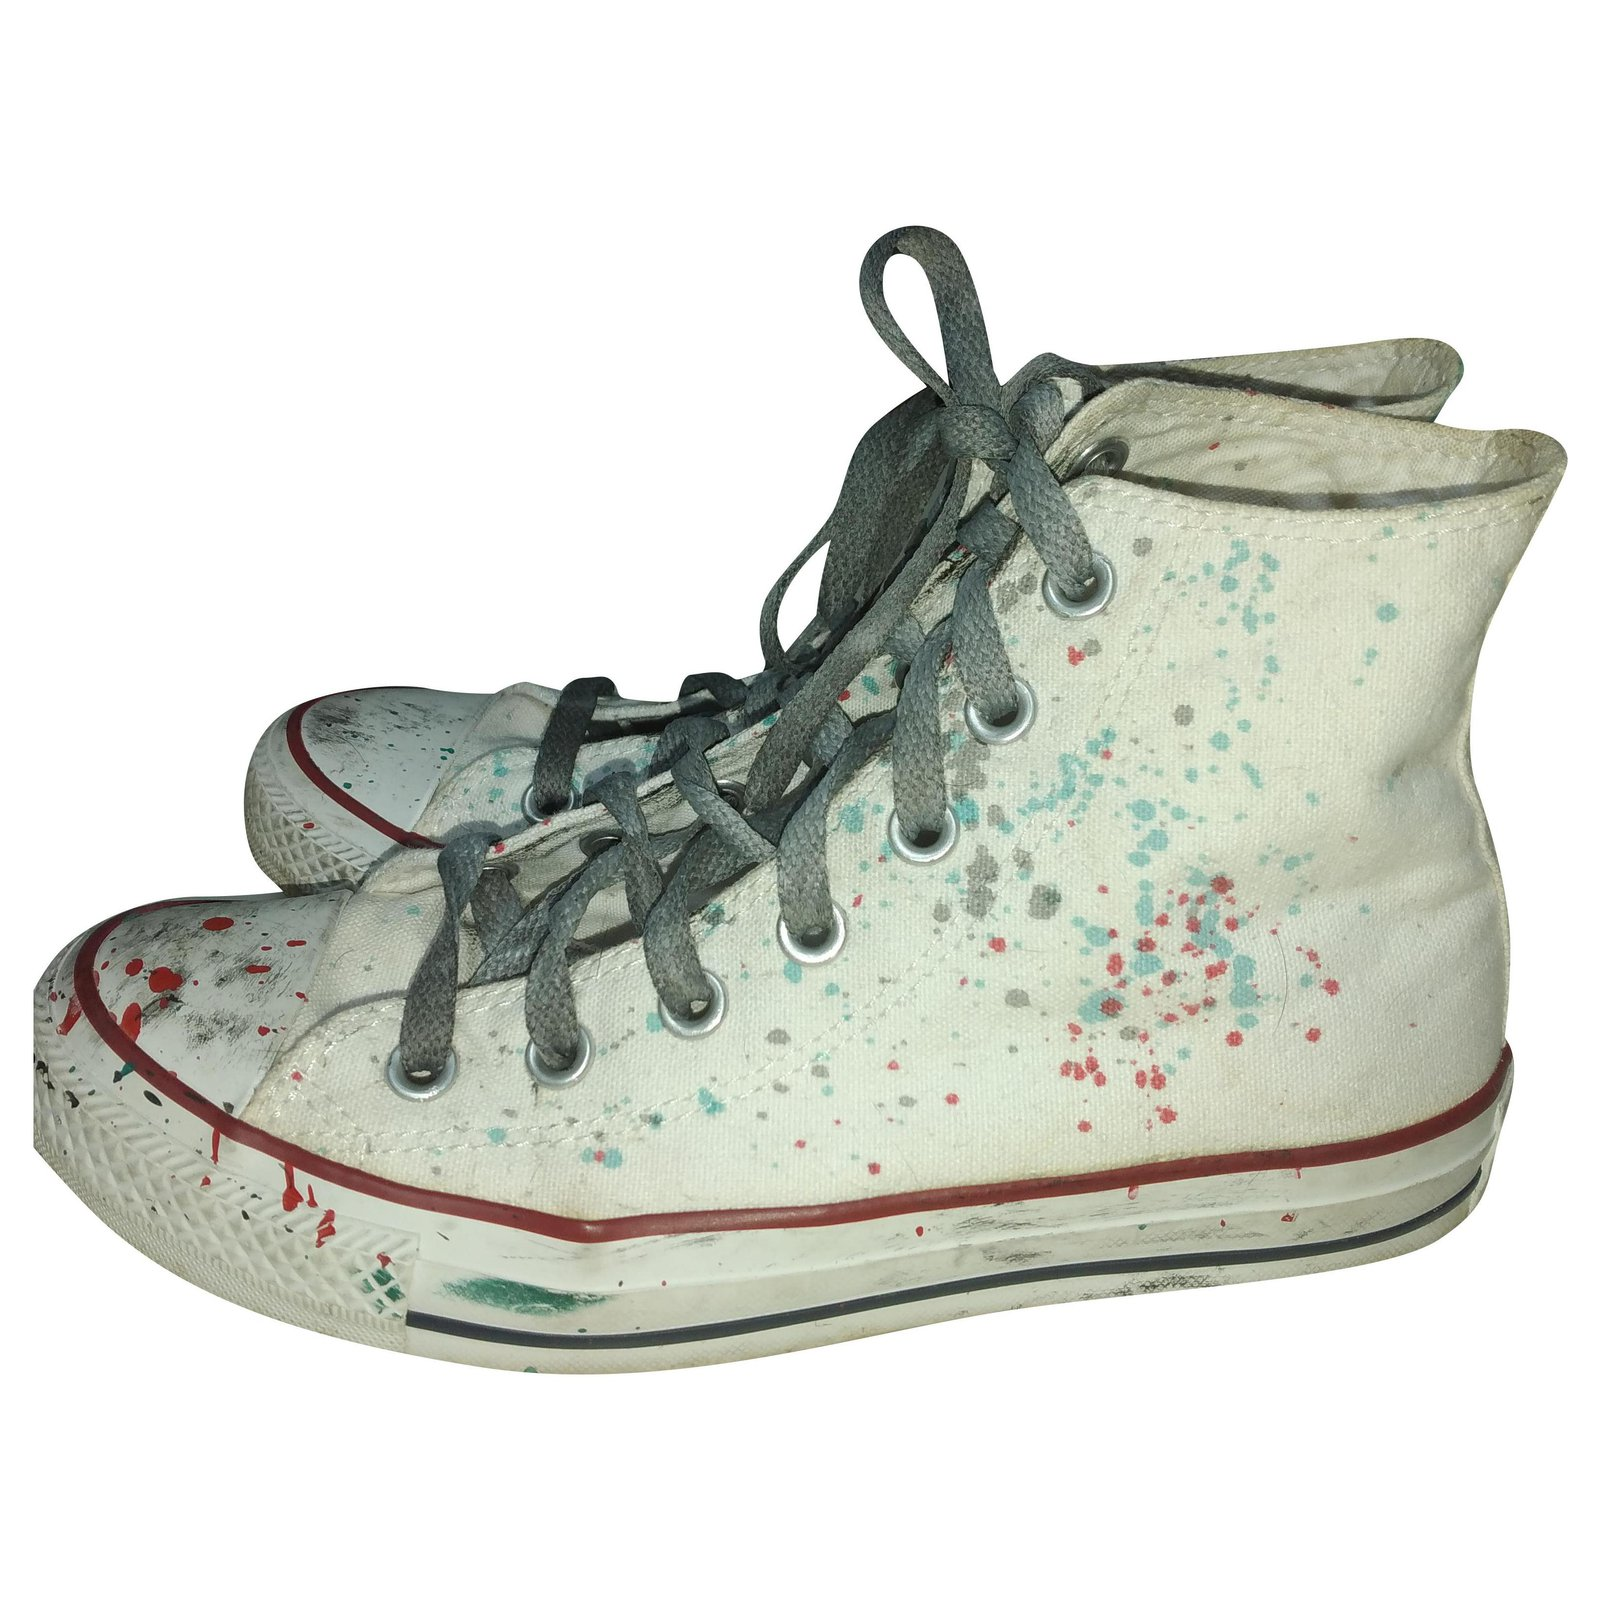 Limited edition Converse All Star